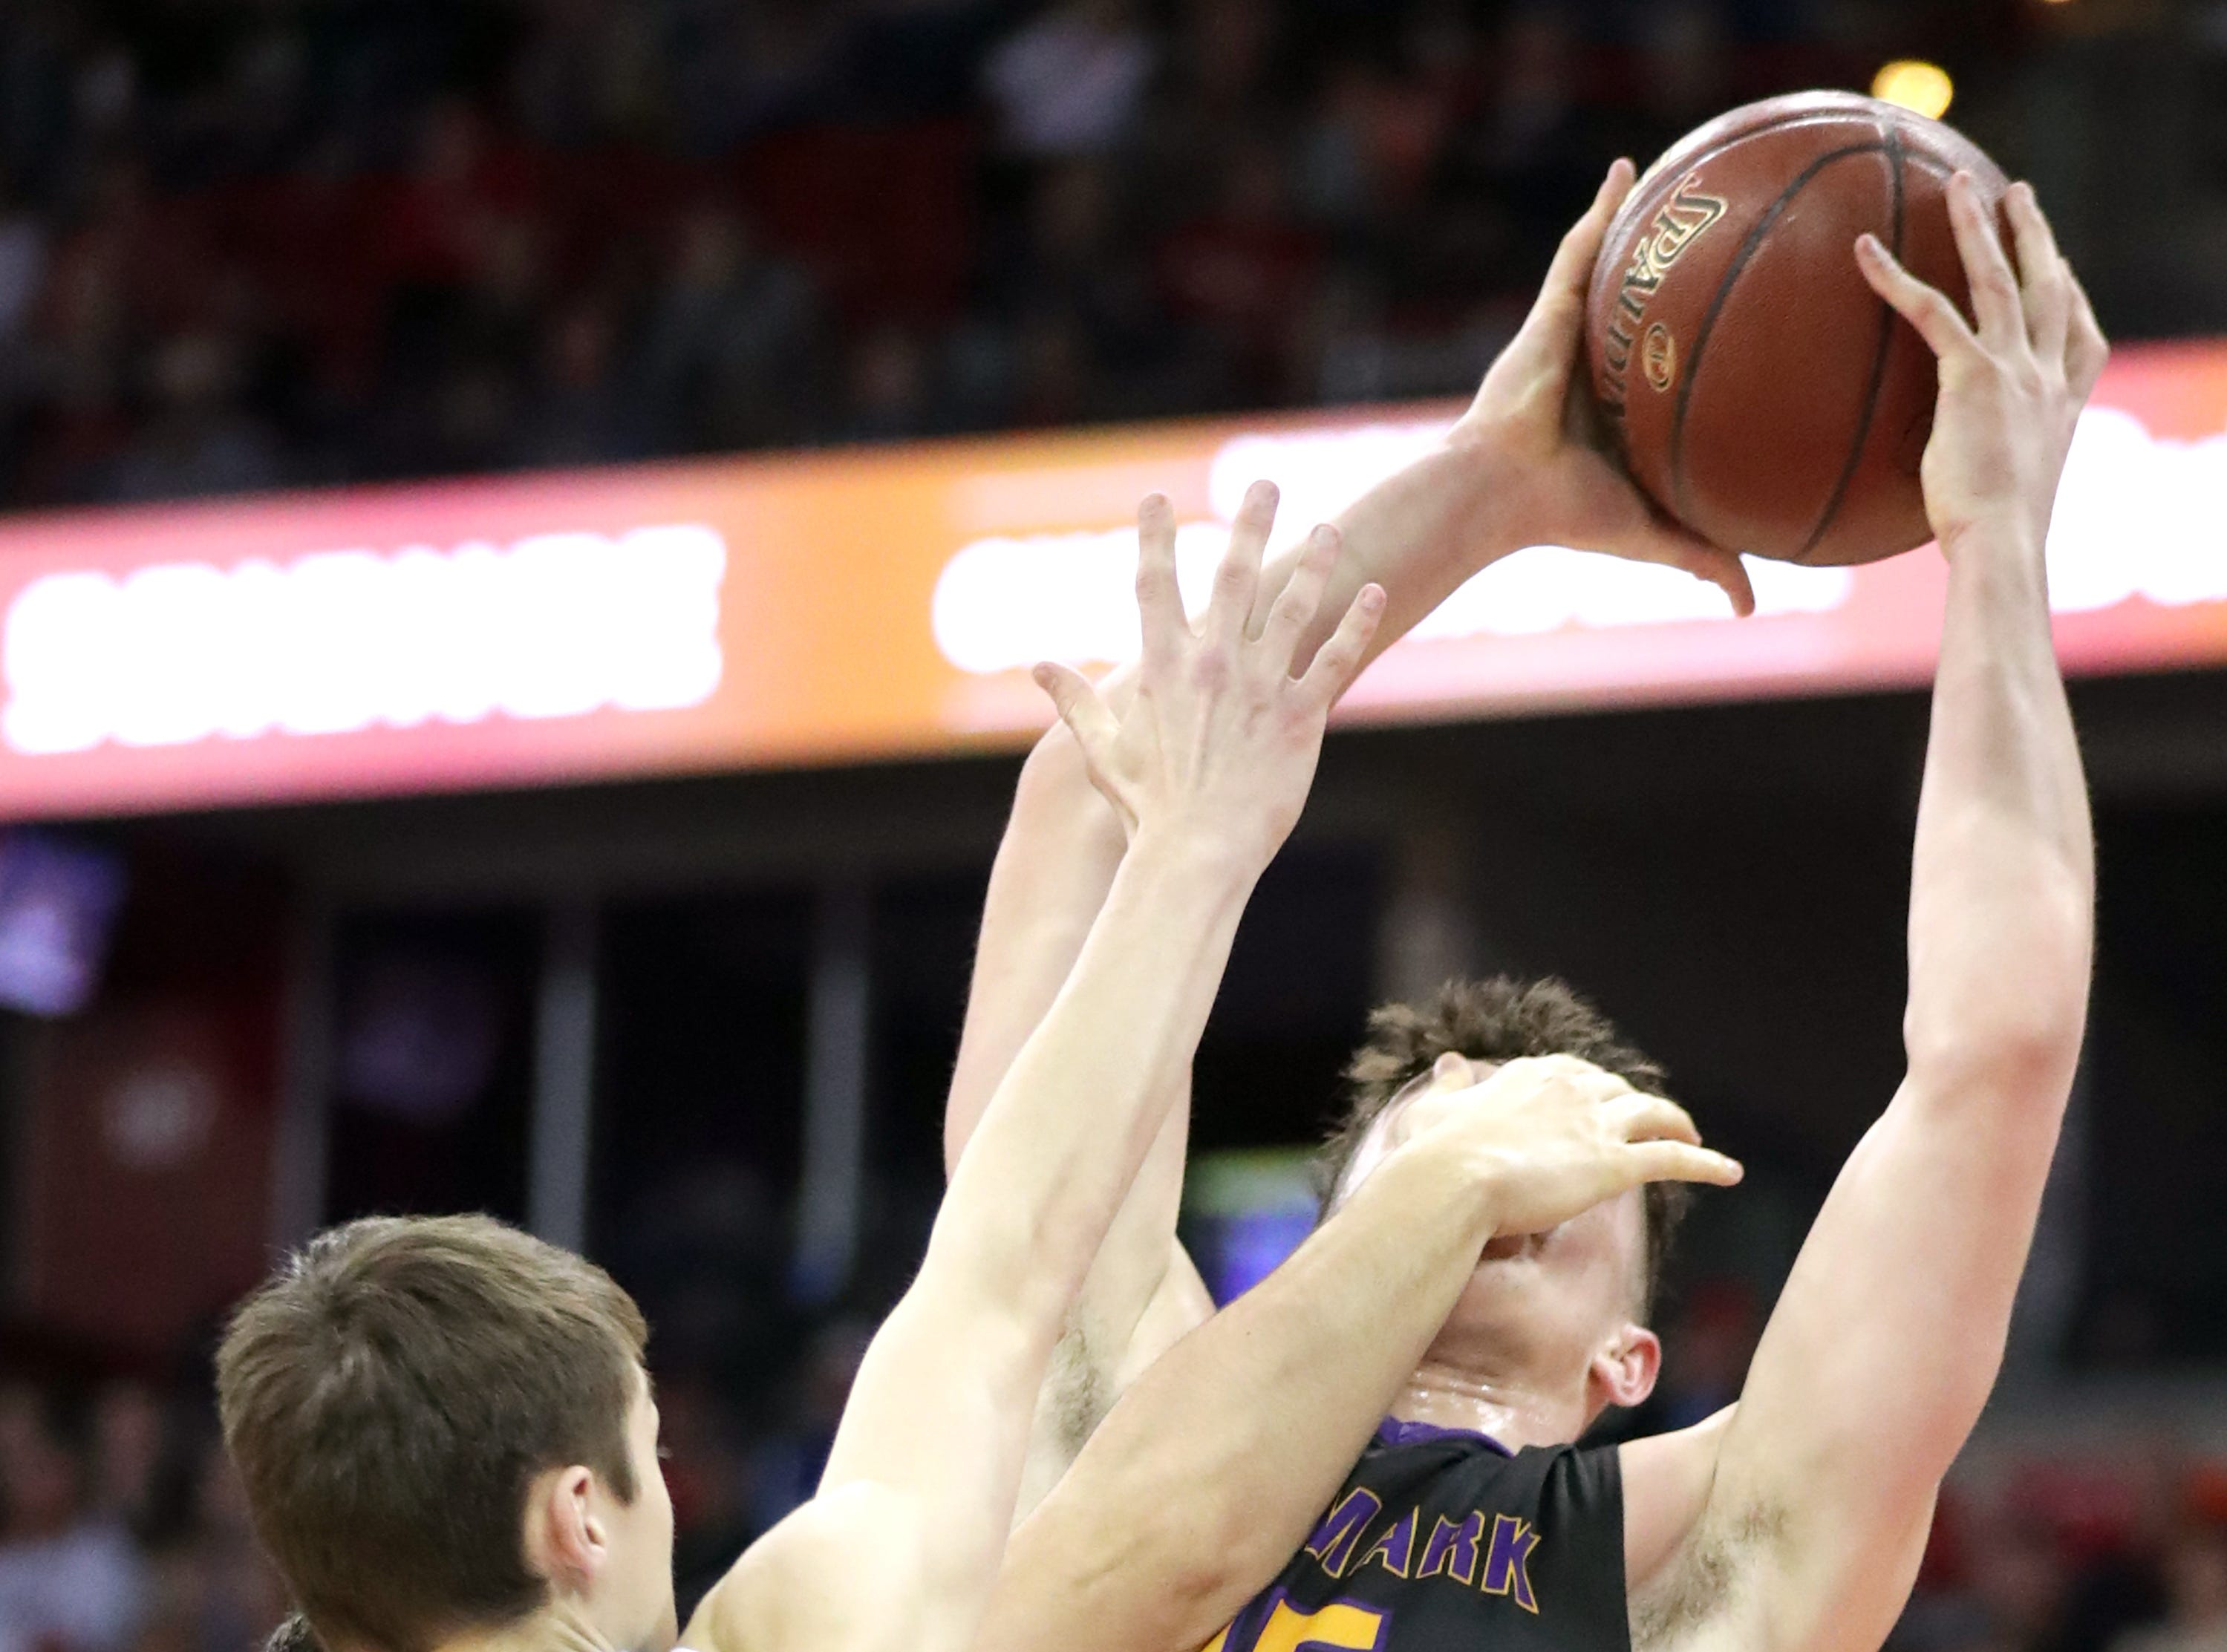 Denmark High School's #15 Zane Short against Waupun High School's #12 Tyler Wiese during their WIAA Division 3 boys basketball state semifinal on Thursday, March 14, 2019, at the KohlCenter in Madison, Wis.  Waupun defeated Denmark 60 to 43.